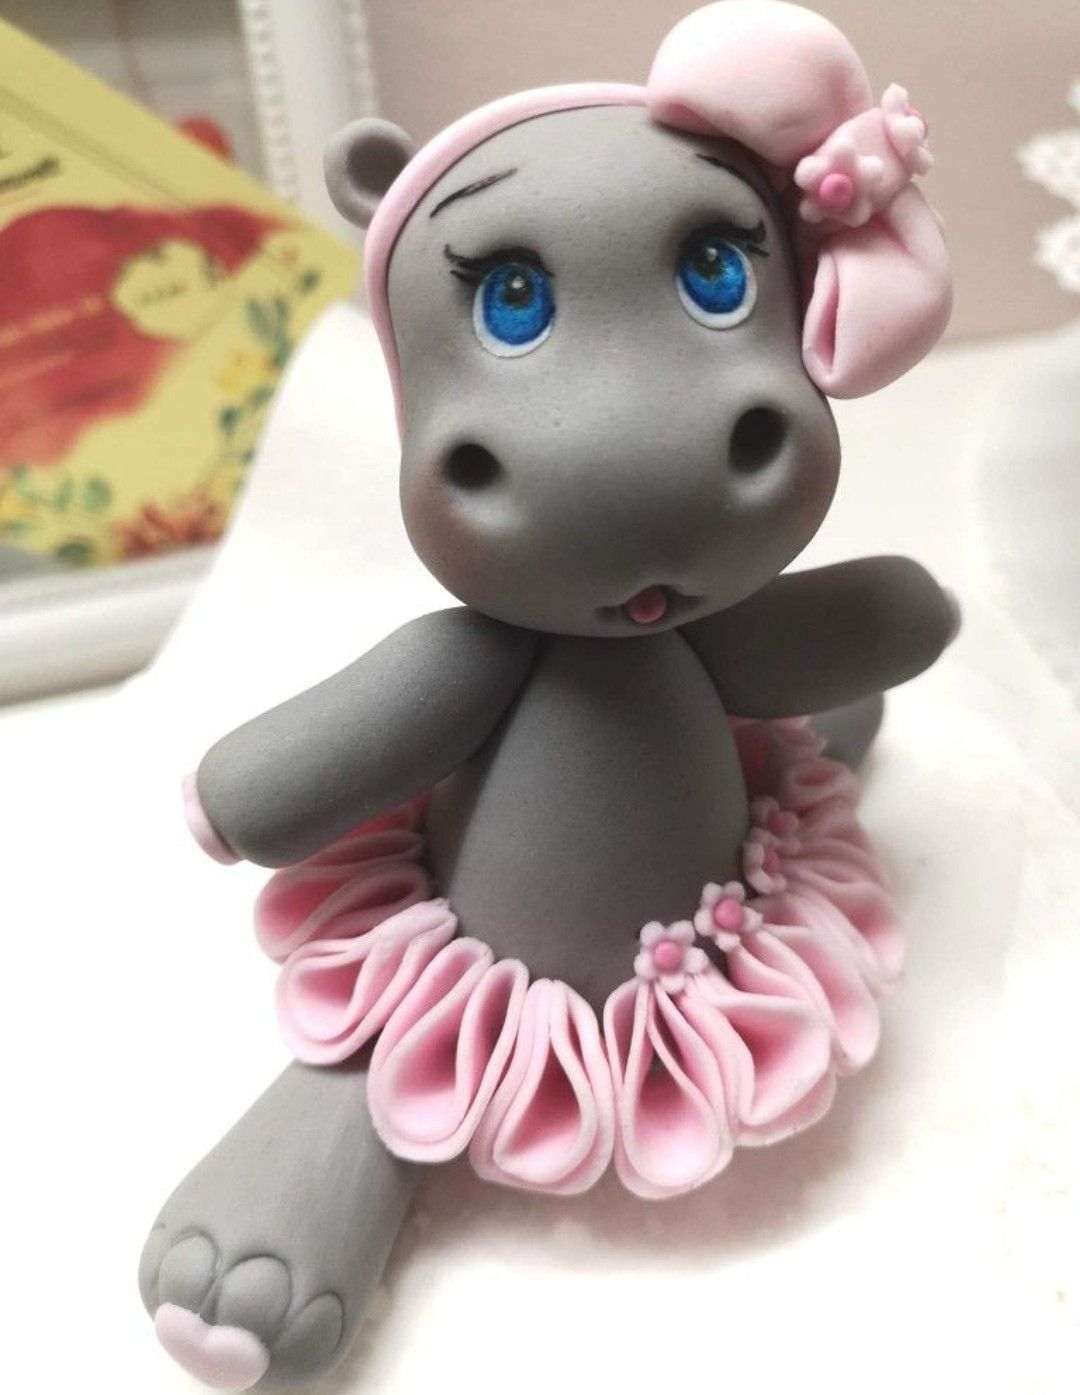 Pin By Jessica Luans On Biscuit Fondant Animals Polymer Clay Sculptures Fondant Cake Toppers